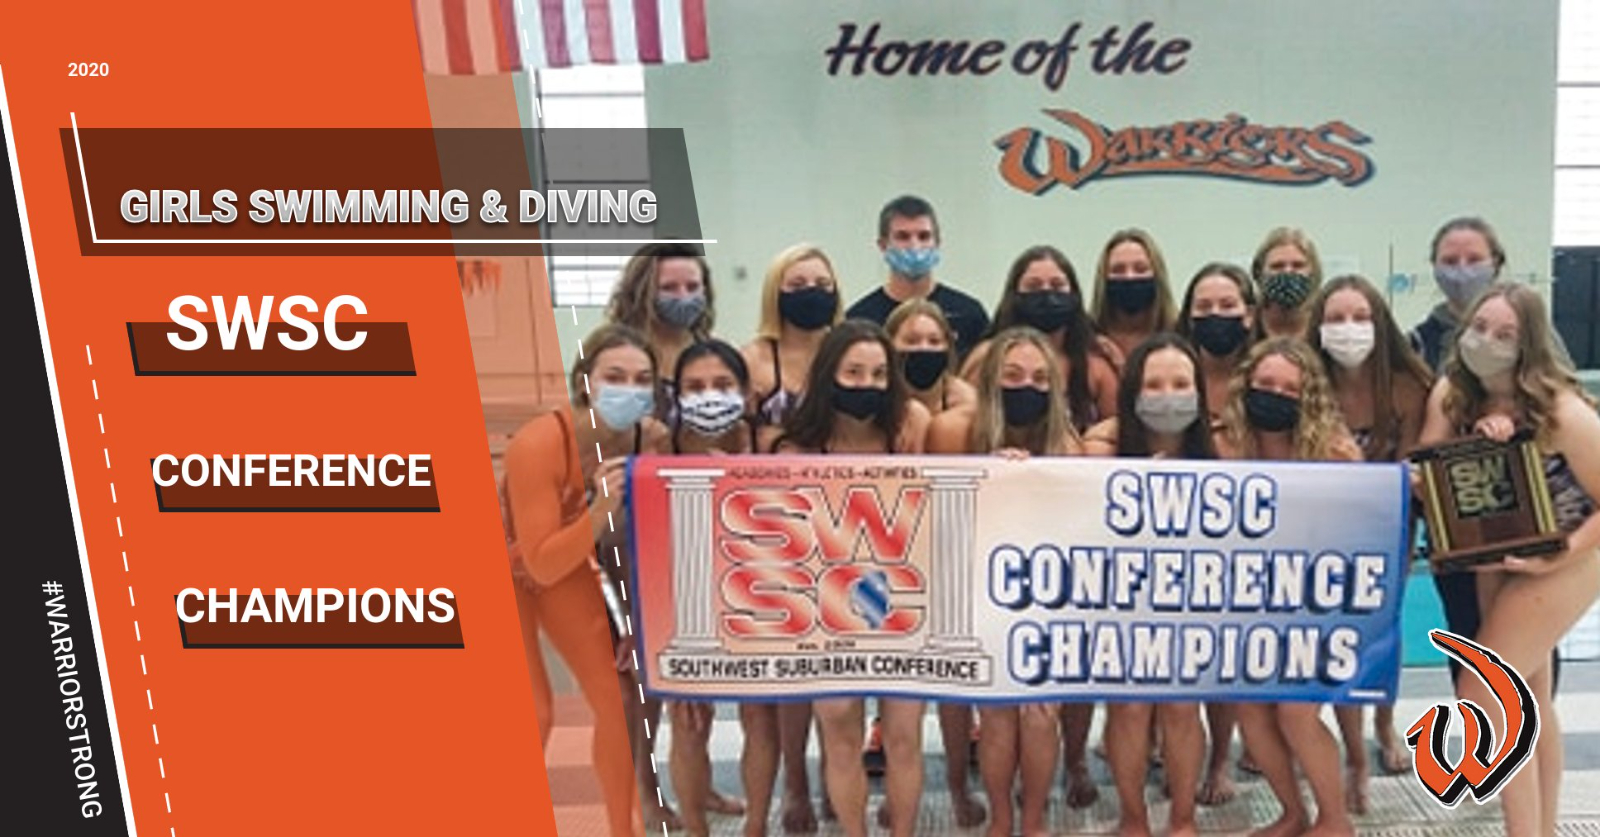 Congratulations to our Girls Swimming & Diving team who are Conference Champions for the first time in program history!